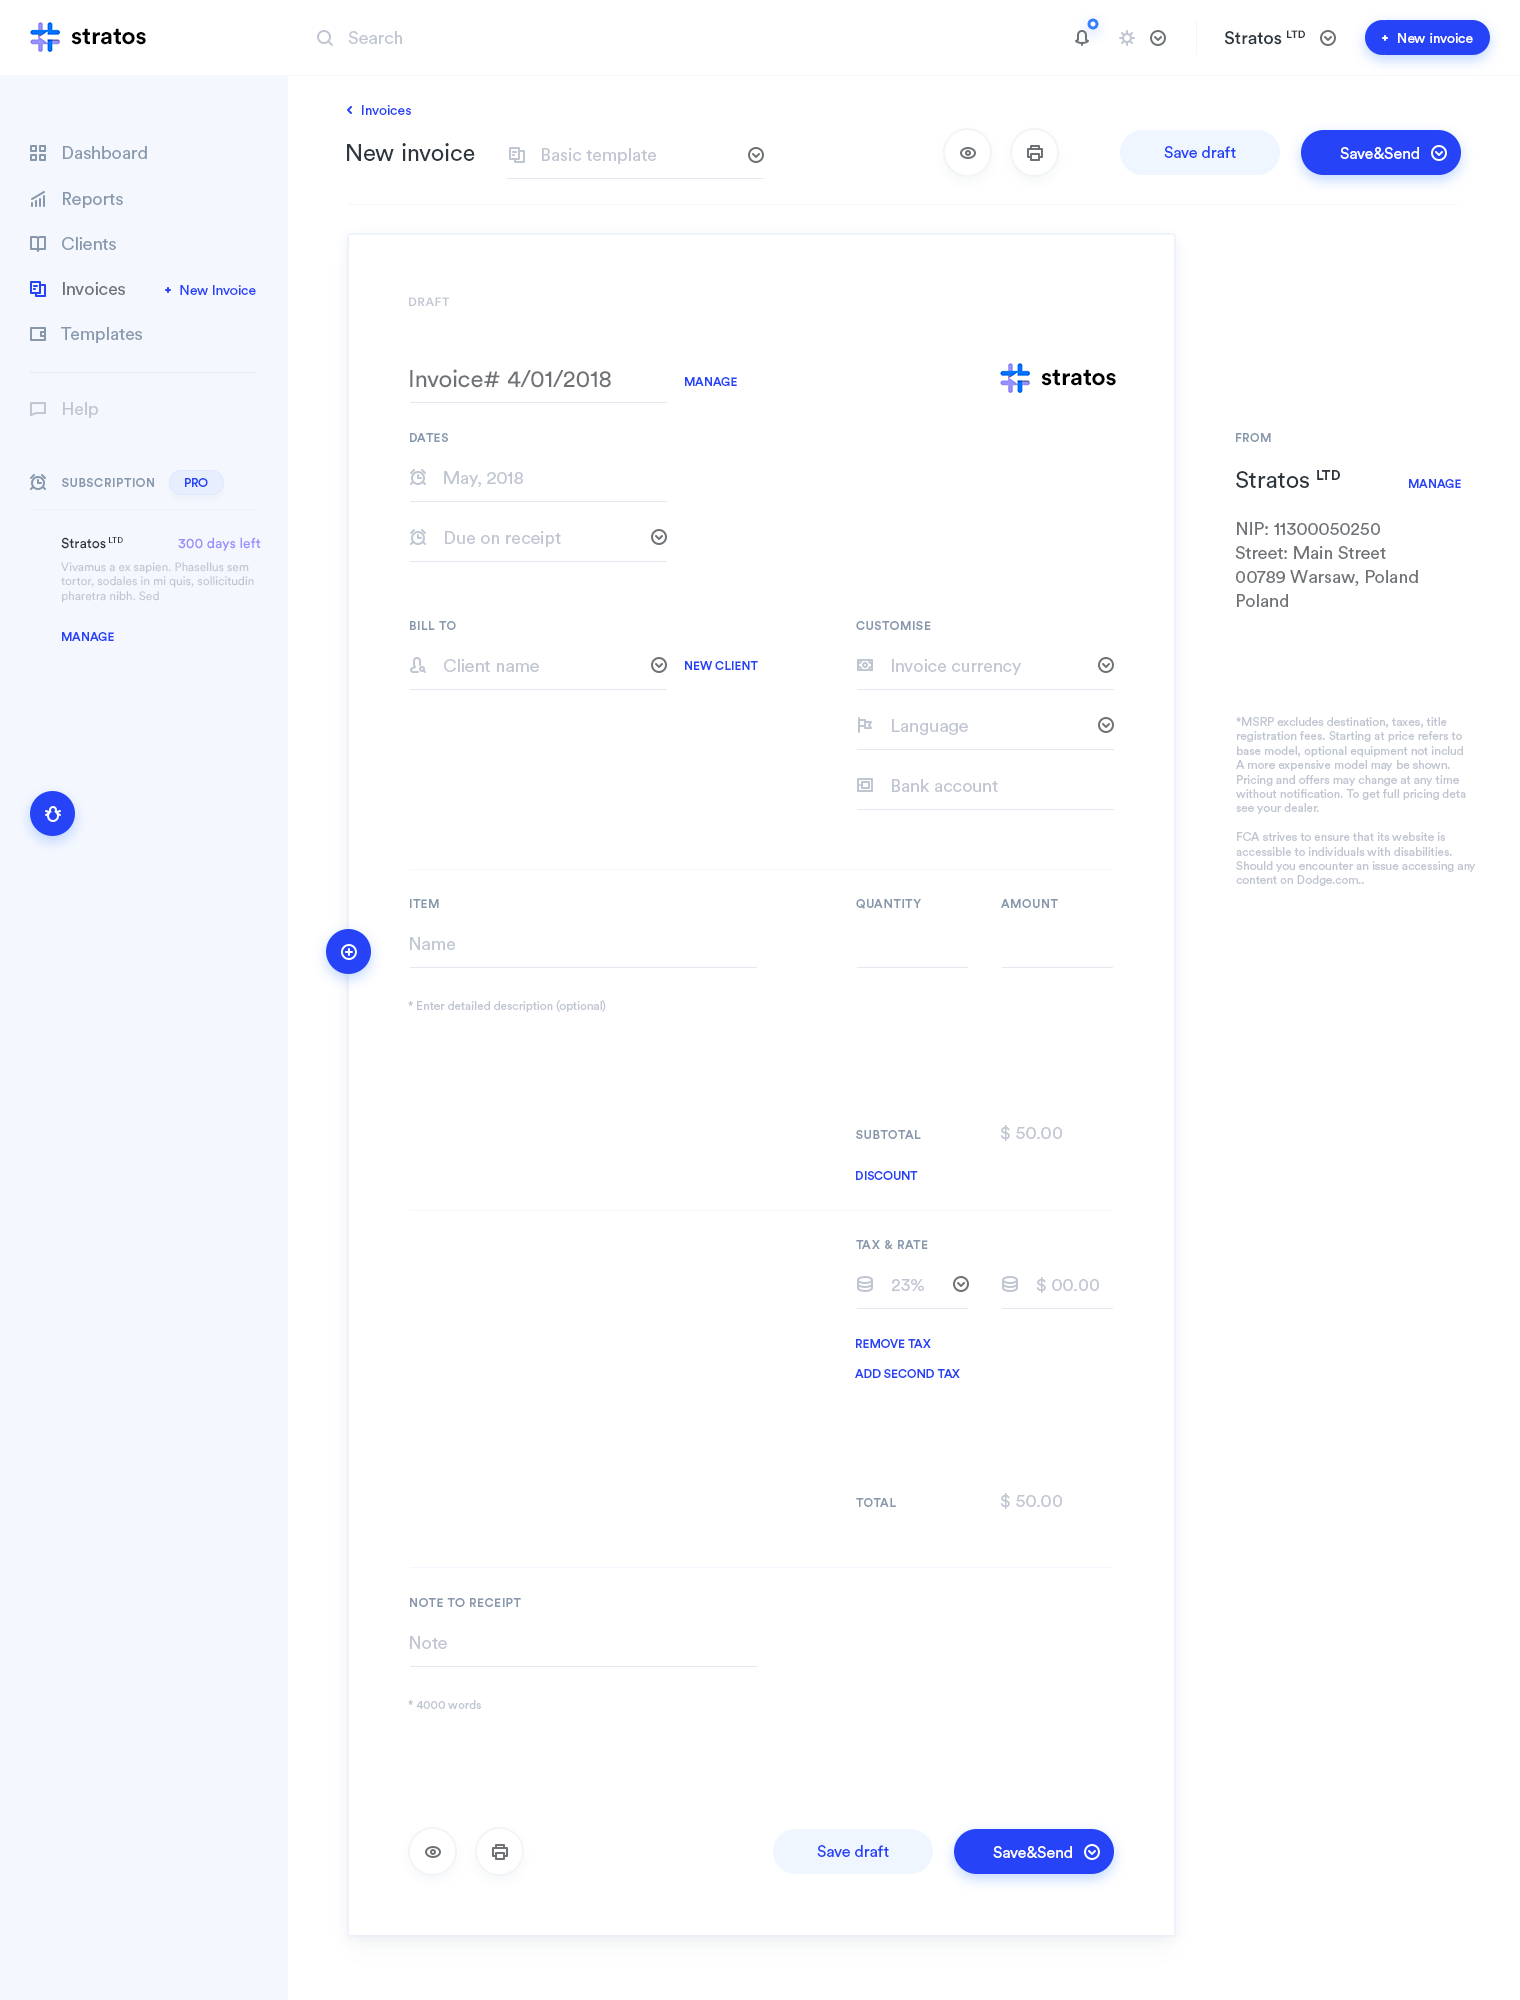 Copy Of Invoices Invoice Reevolutionprevious Version Httpsdribbbleshots .